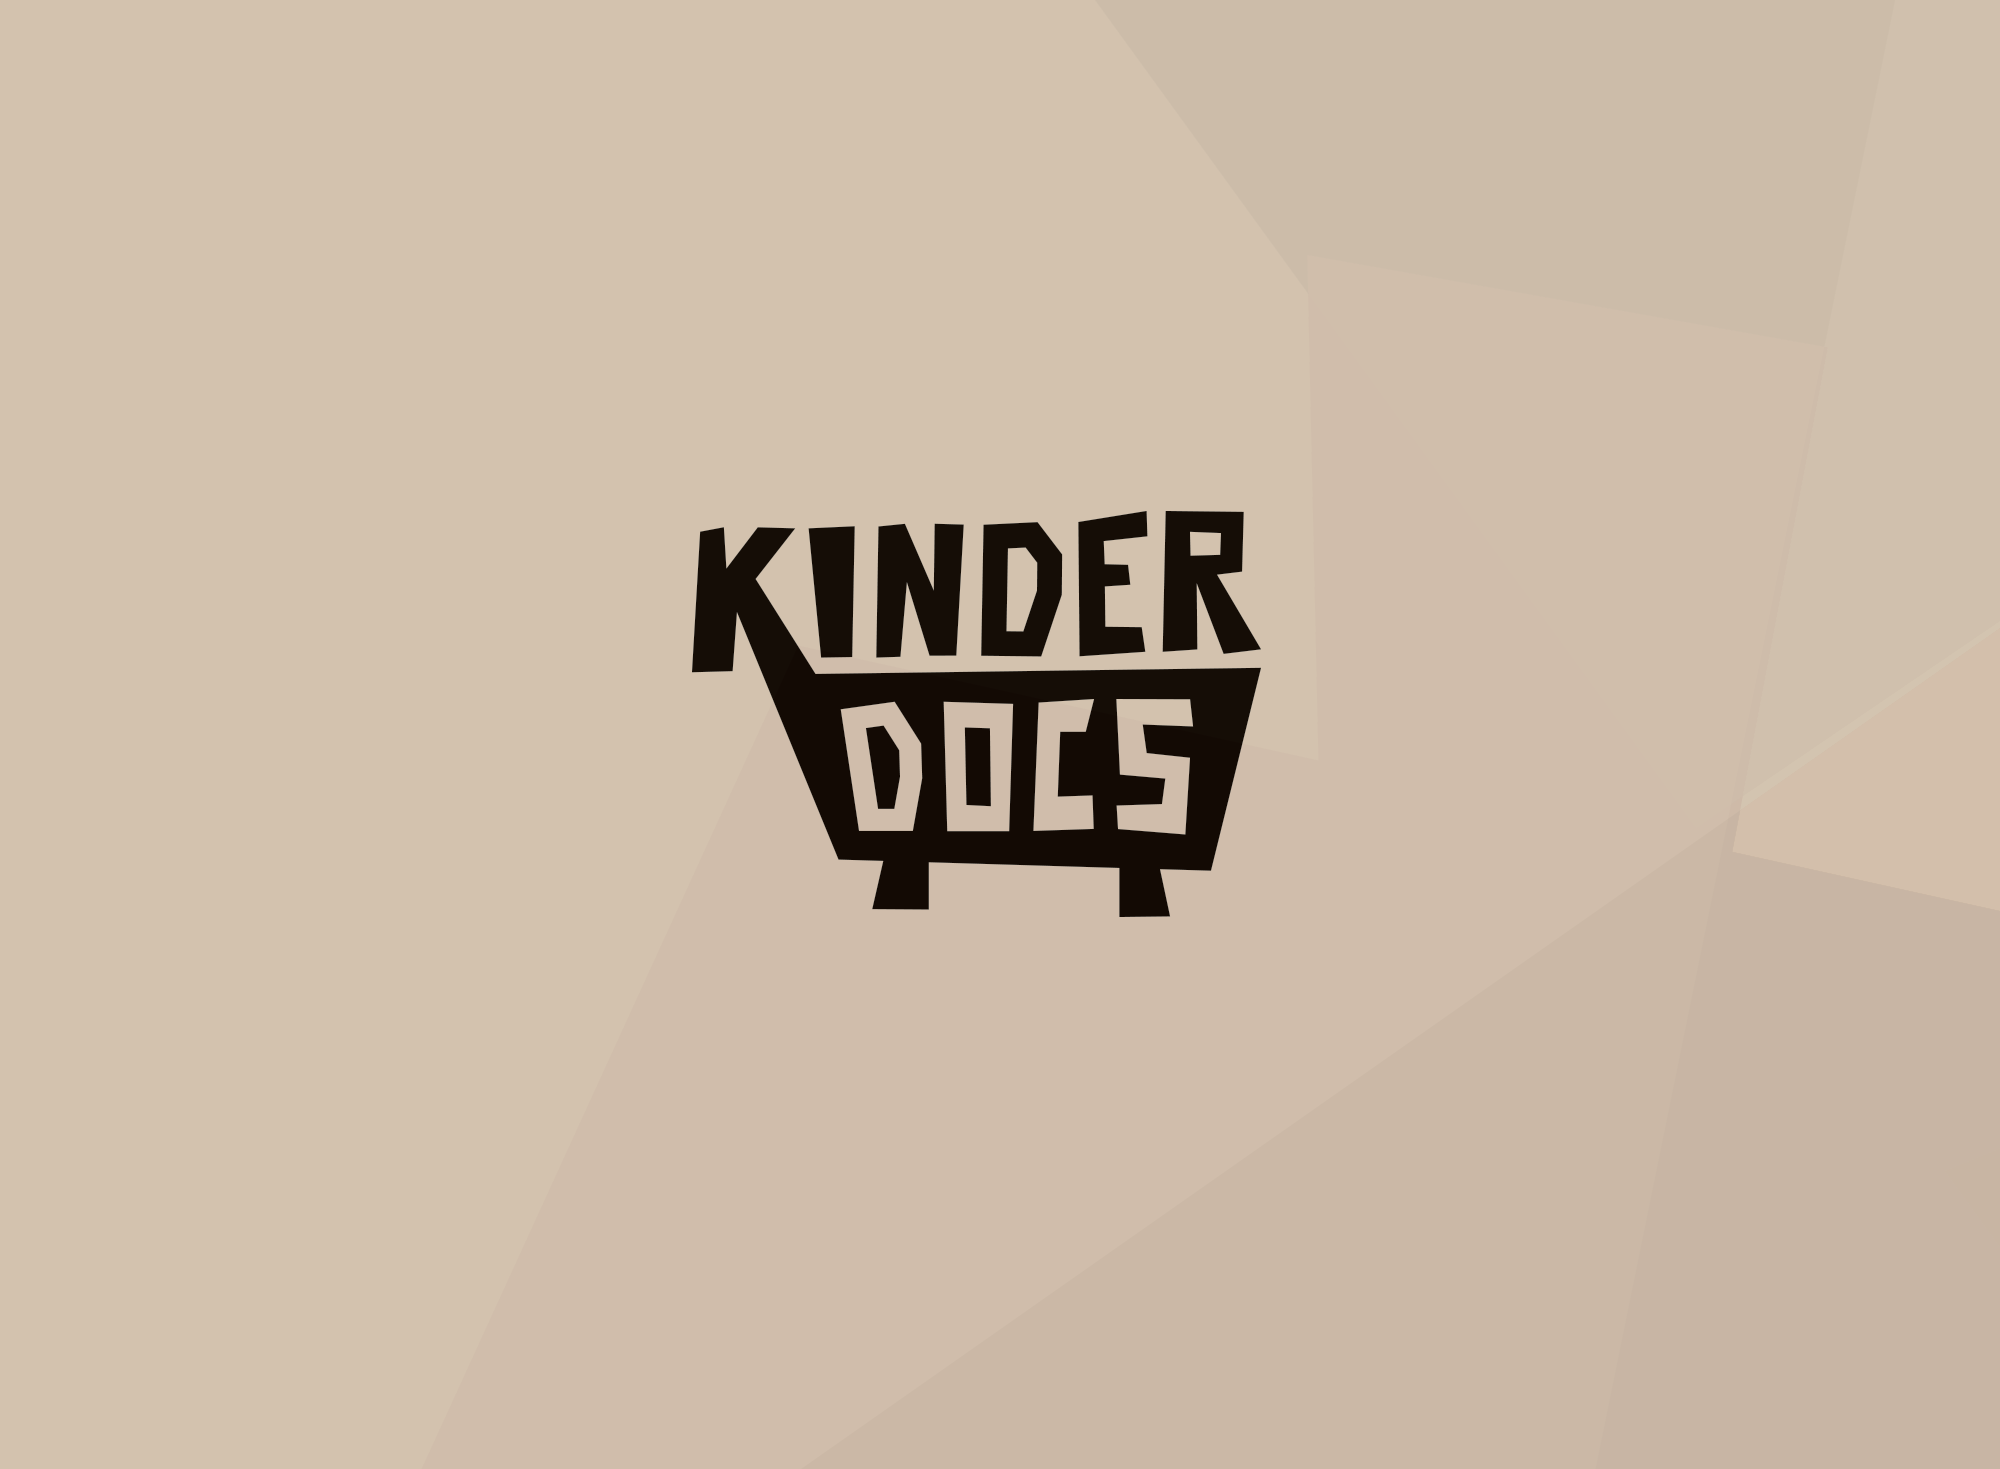 kinderdocs logotype zazdesign